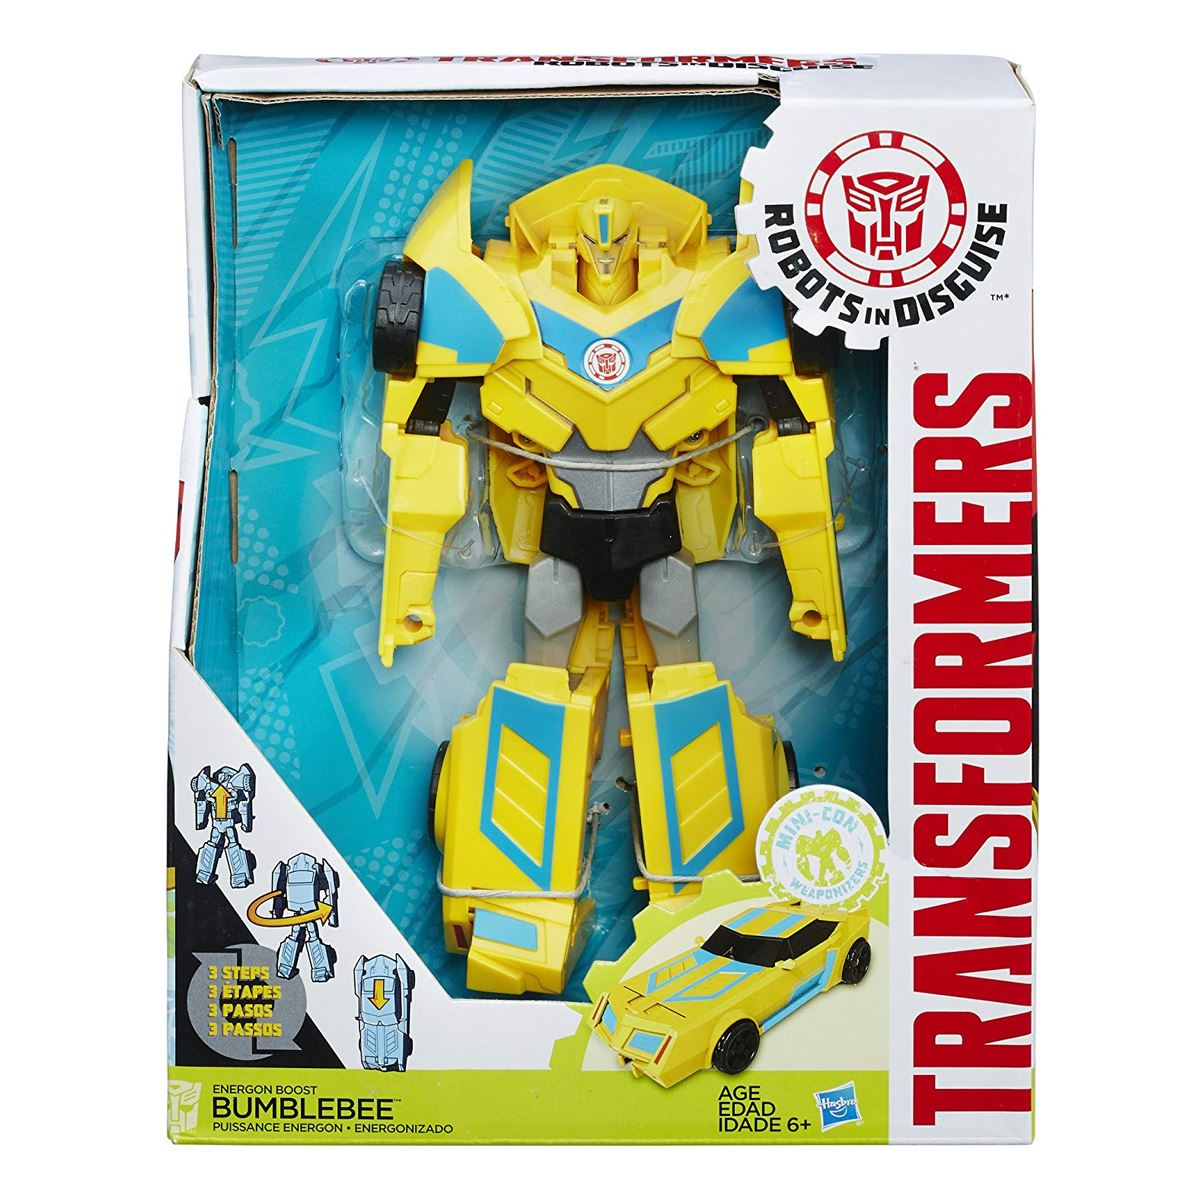 New Transformers Robots in Disguise 3-Step Bumblebee ou Bisk figure OFFICIEL